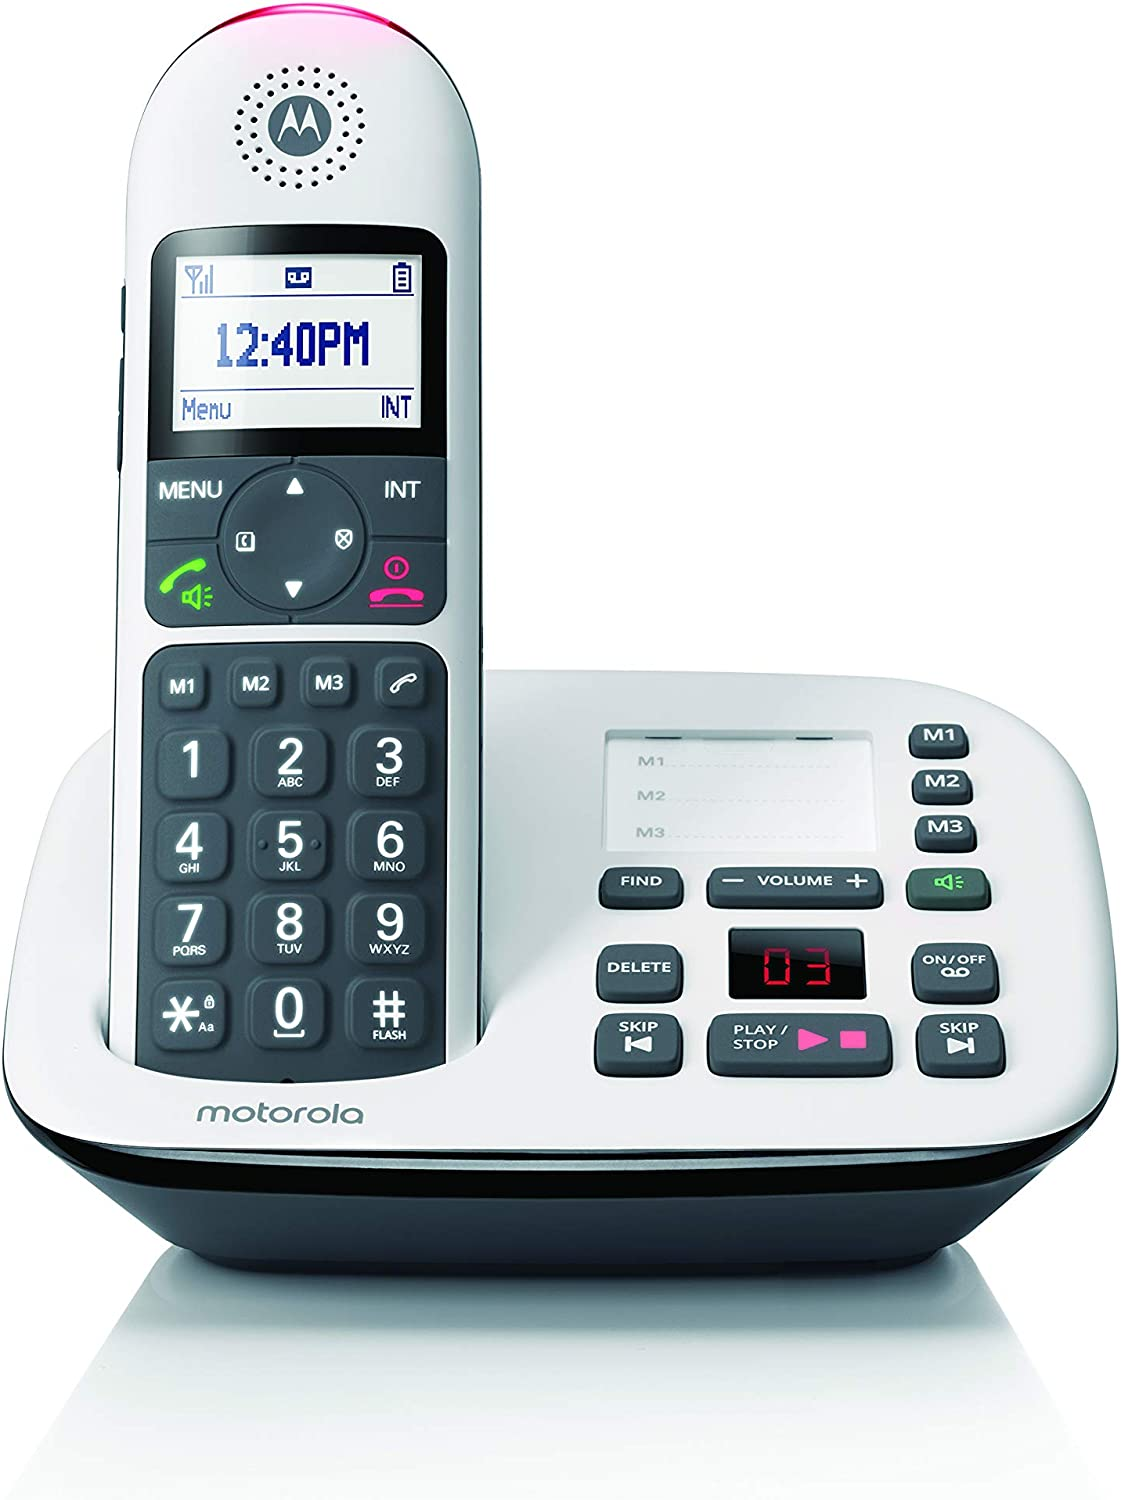 Motorola CD5011 DECT 6.0 Cordless Phone with Answering Machine, Call Block and Volume Boost, White, 1 Handset